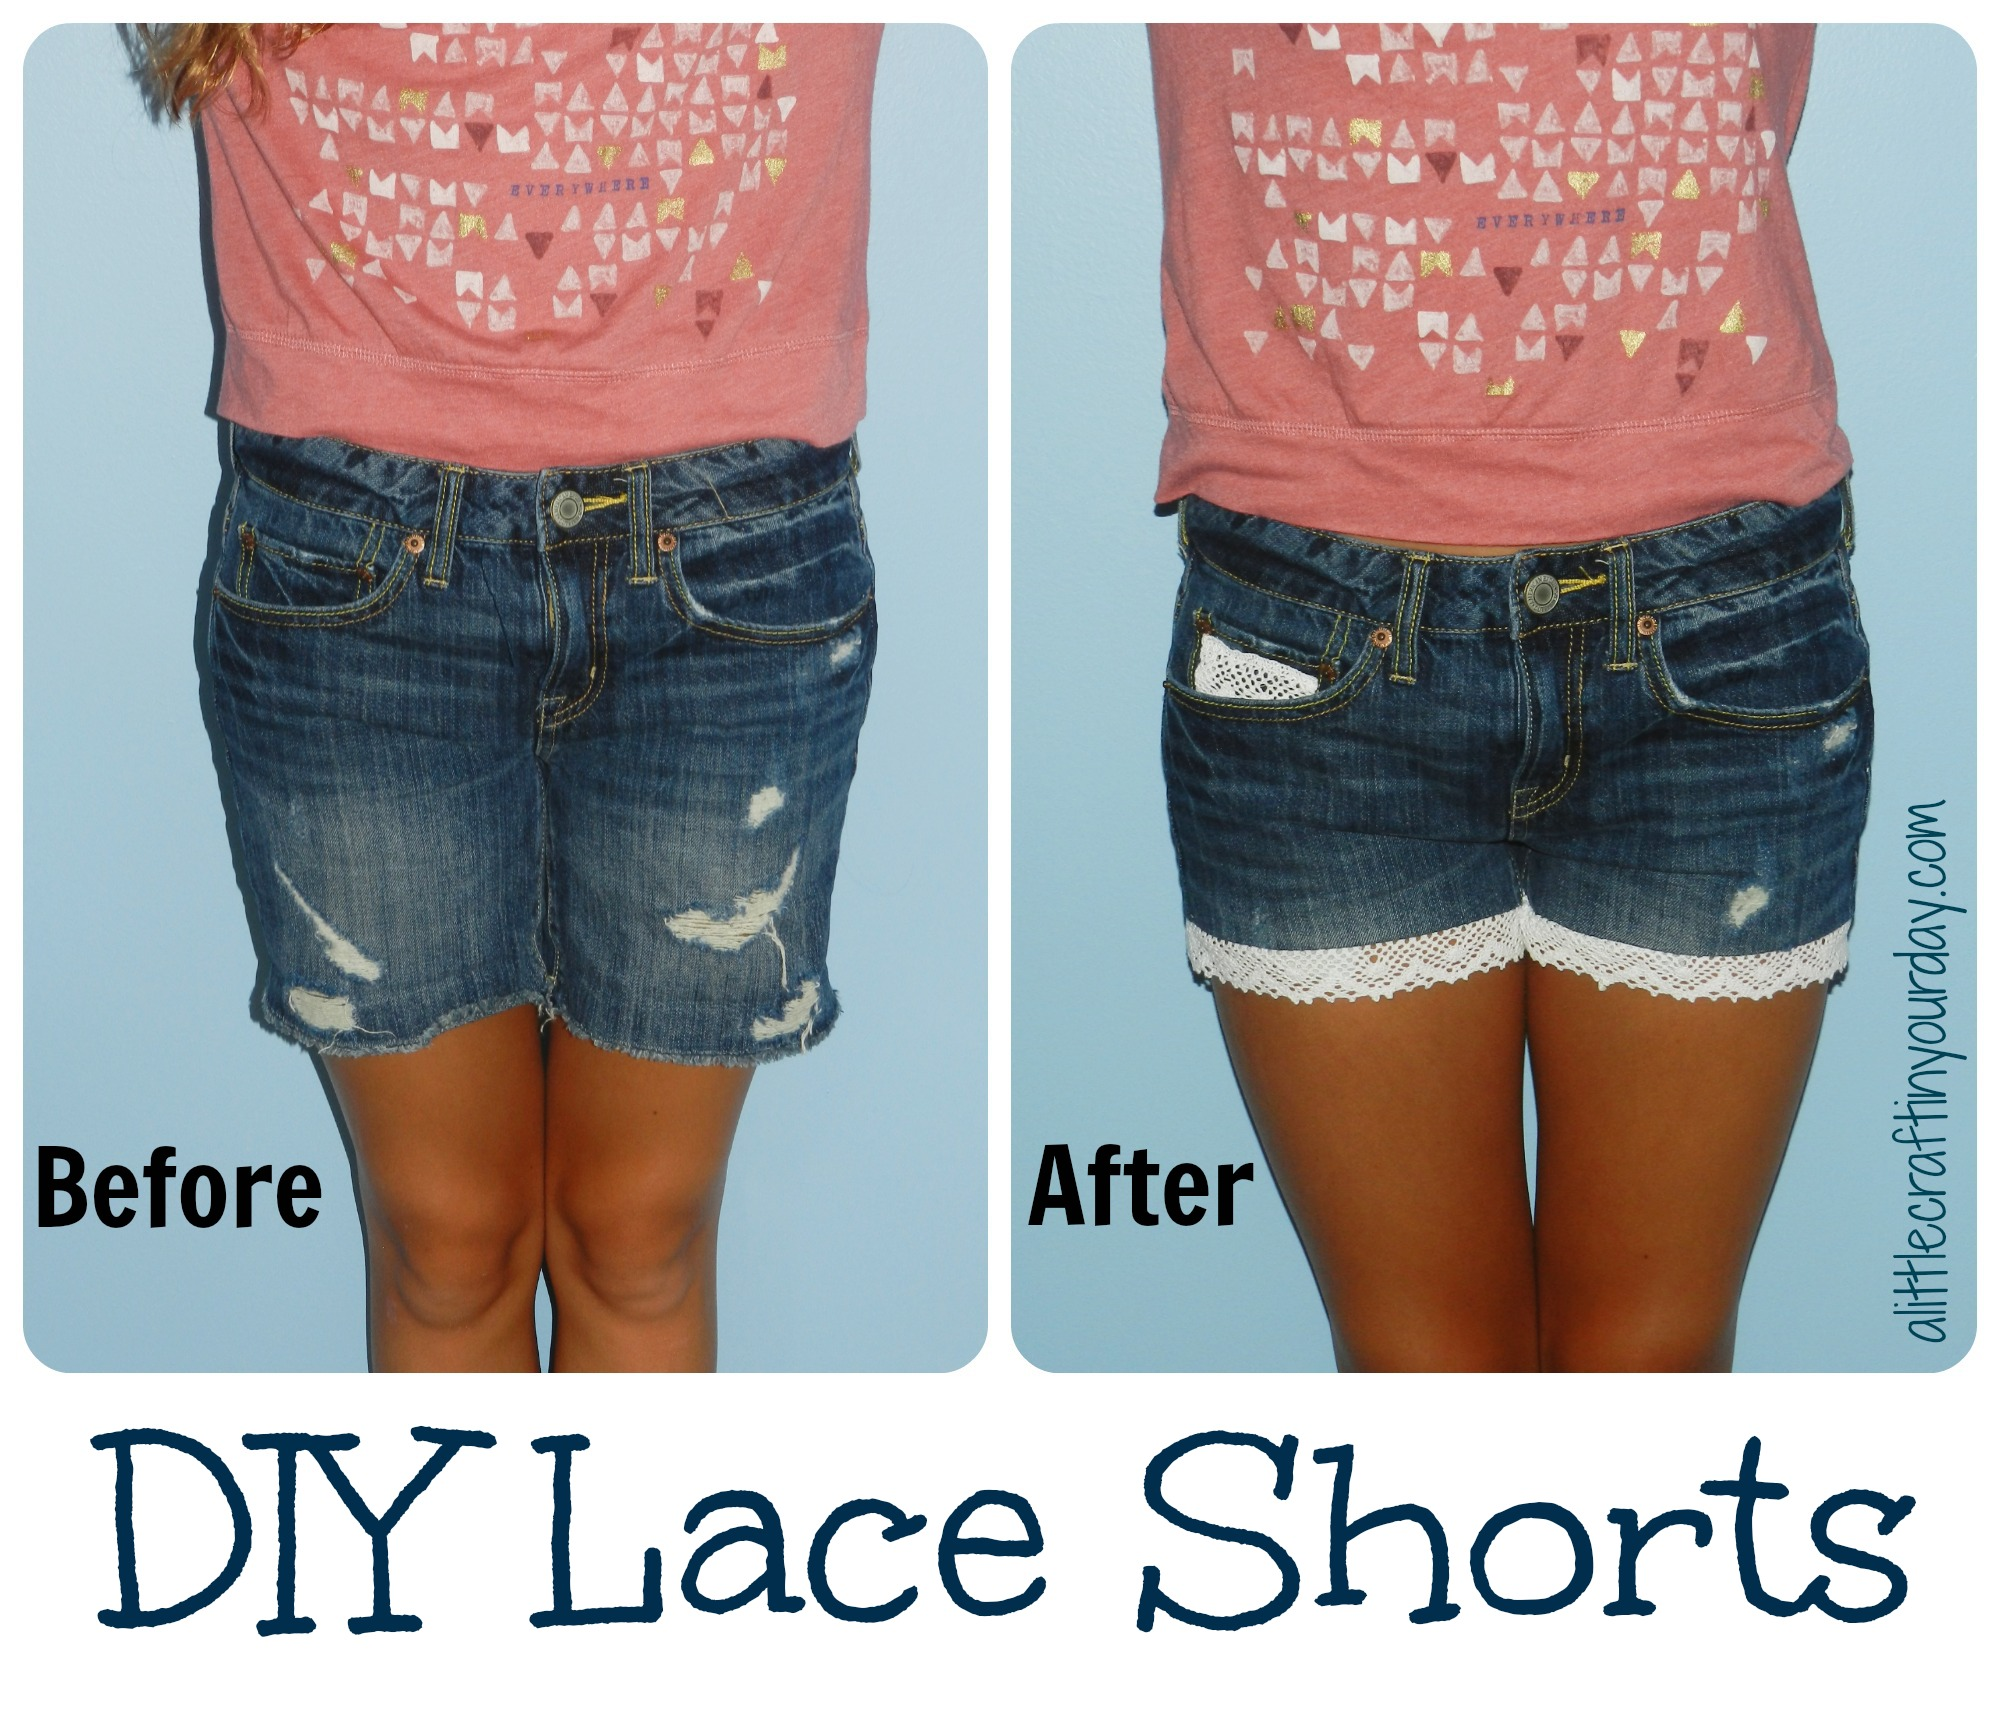 DIY_Lace_Shorts